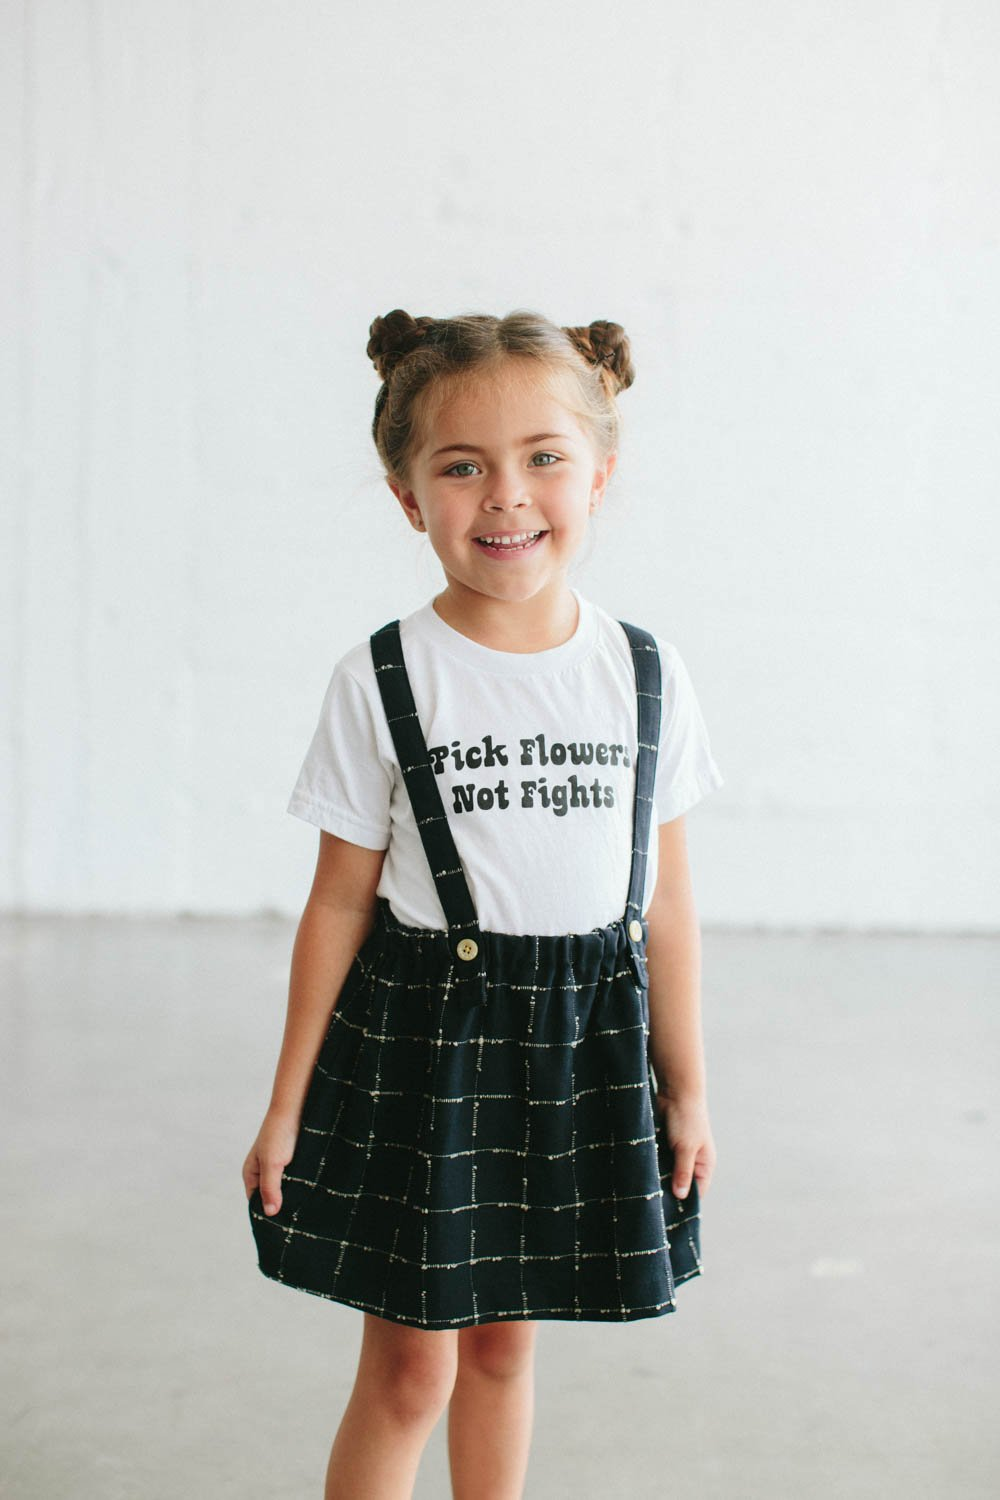 $24.99 PICK FLOWERS NOT FIGHTS KID'S T-SHIRT